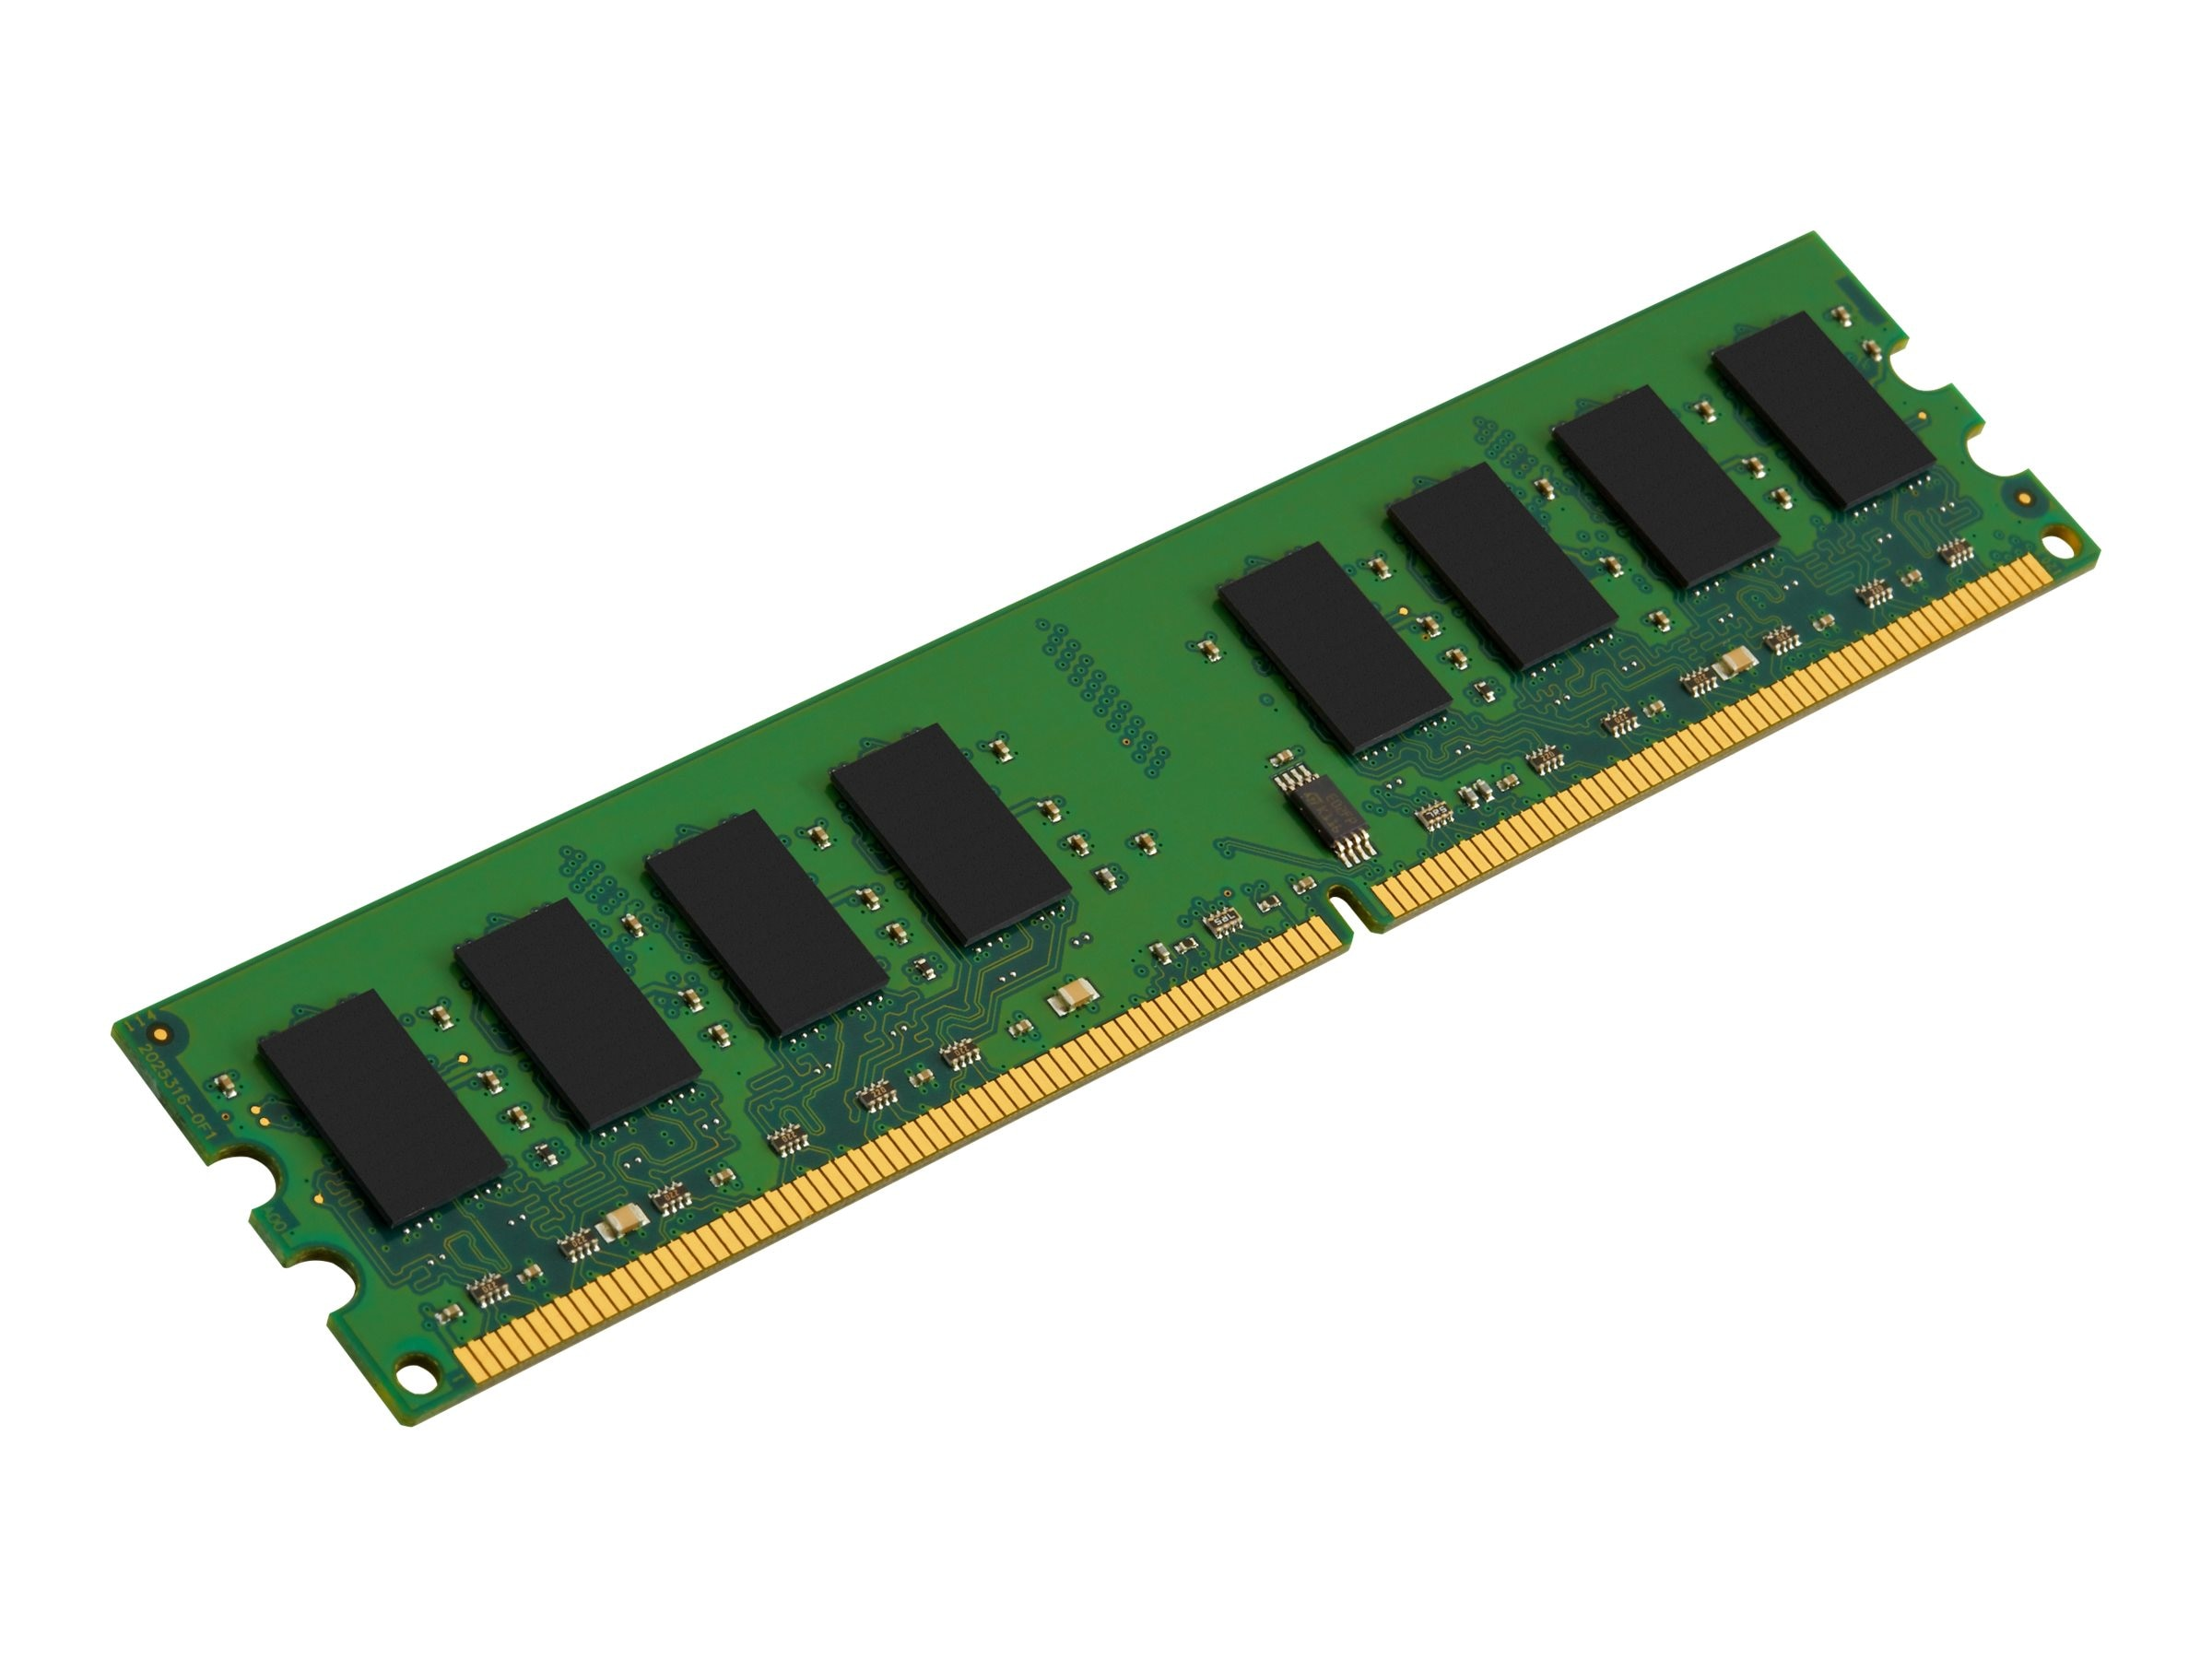 Kingston 2GB PC2-5300 240-pin DDR2 SDRAM UDIMM for Select HP Models